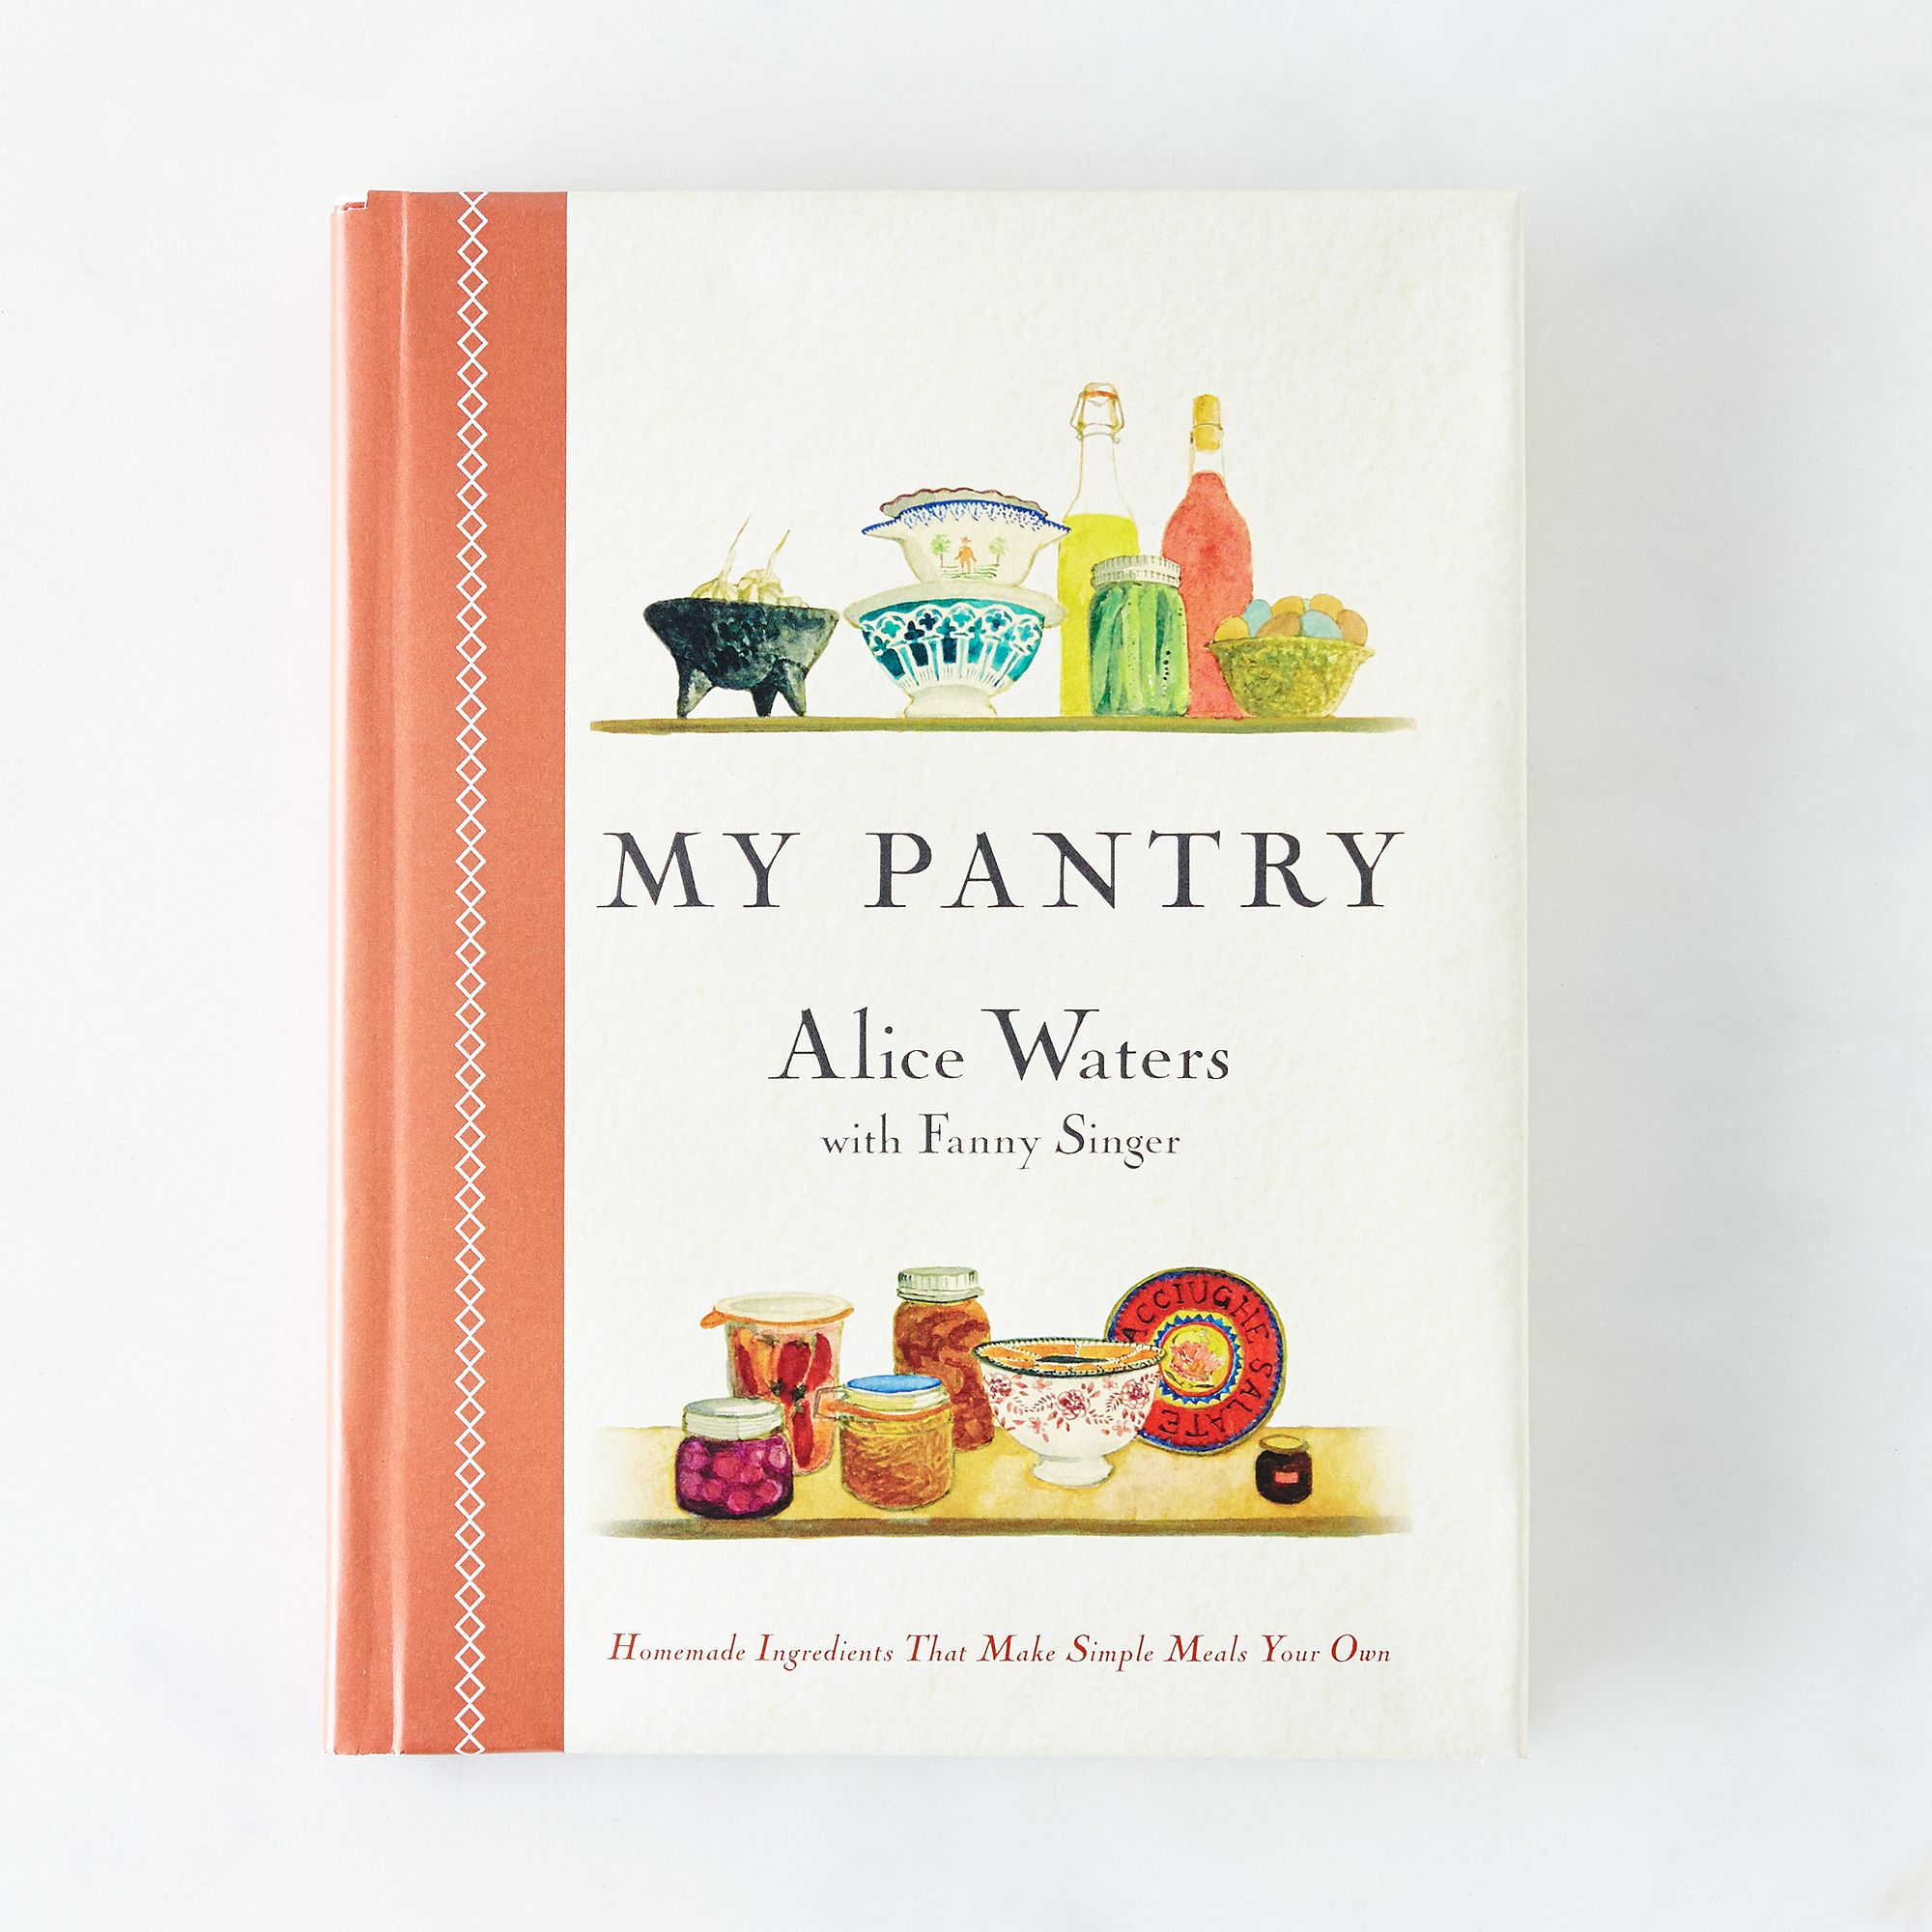 952fe8e4 7642 4d65 ab61 84278cb7405c  2015 0814 penguin random house my pantry alice waters book rocky luten 003